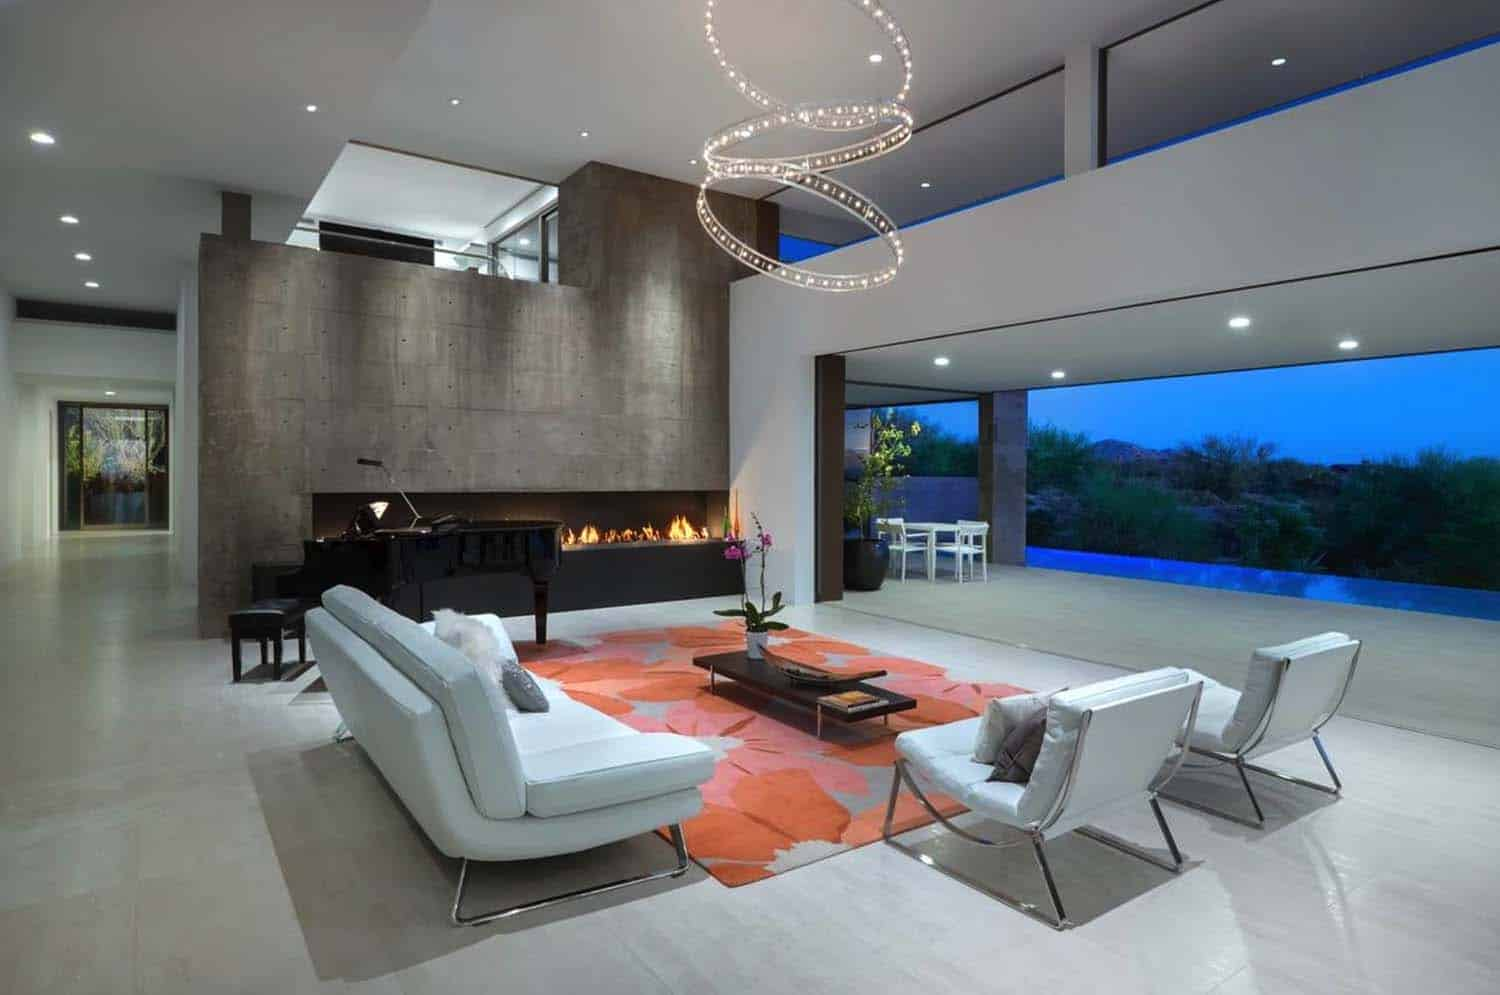 Contemporary Desert Home-Tate Studio Architects-07-1 Kindesign